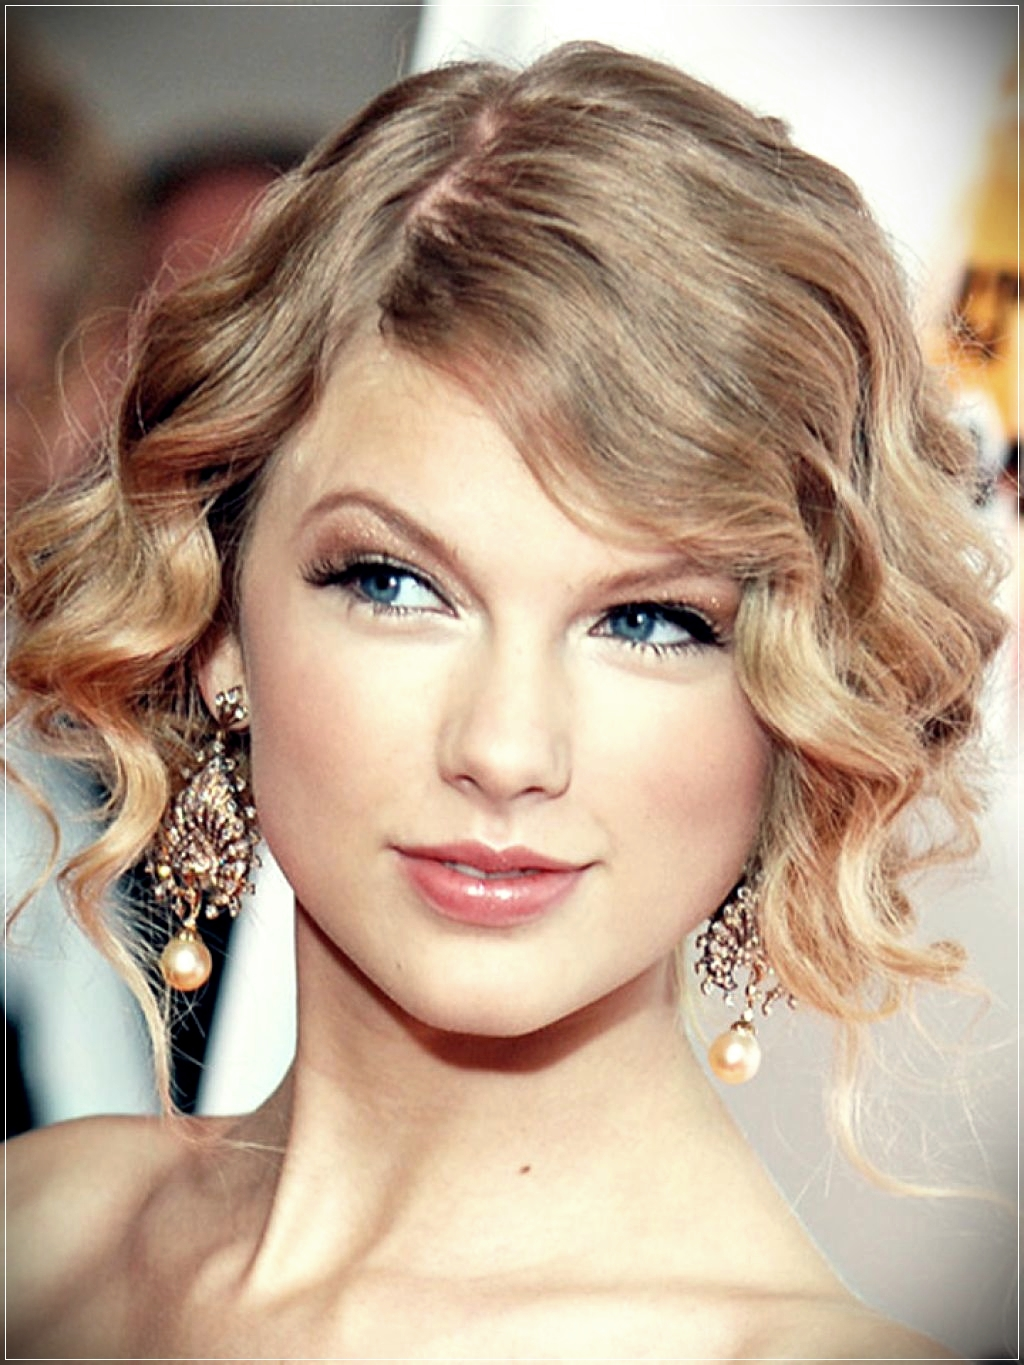 prom hairstyles for short hair 1 - Choose the perfect hairstyle for your short hair